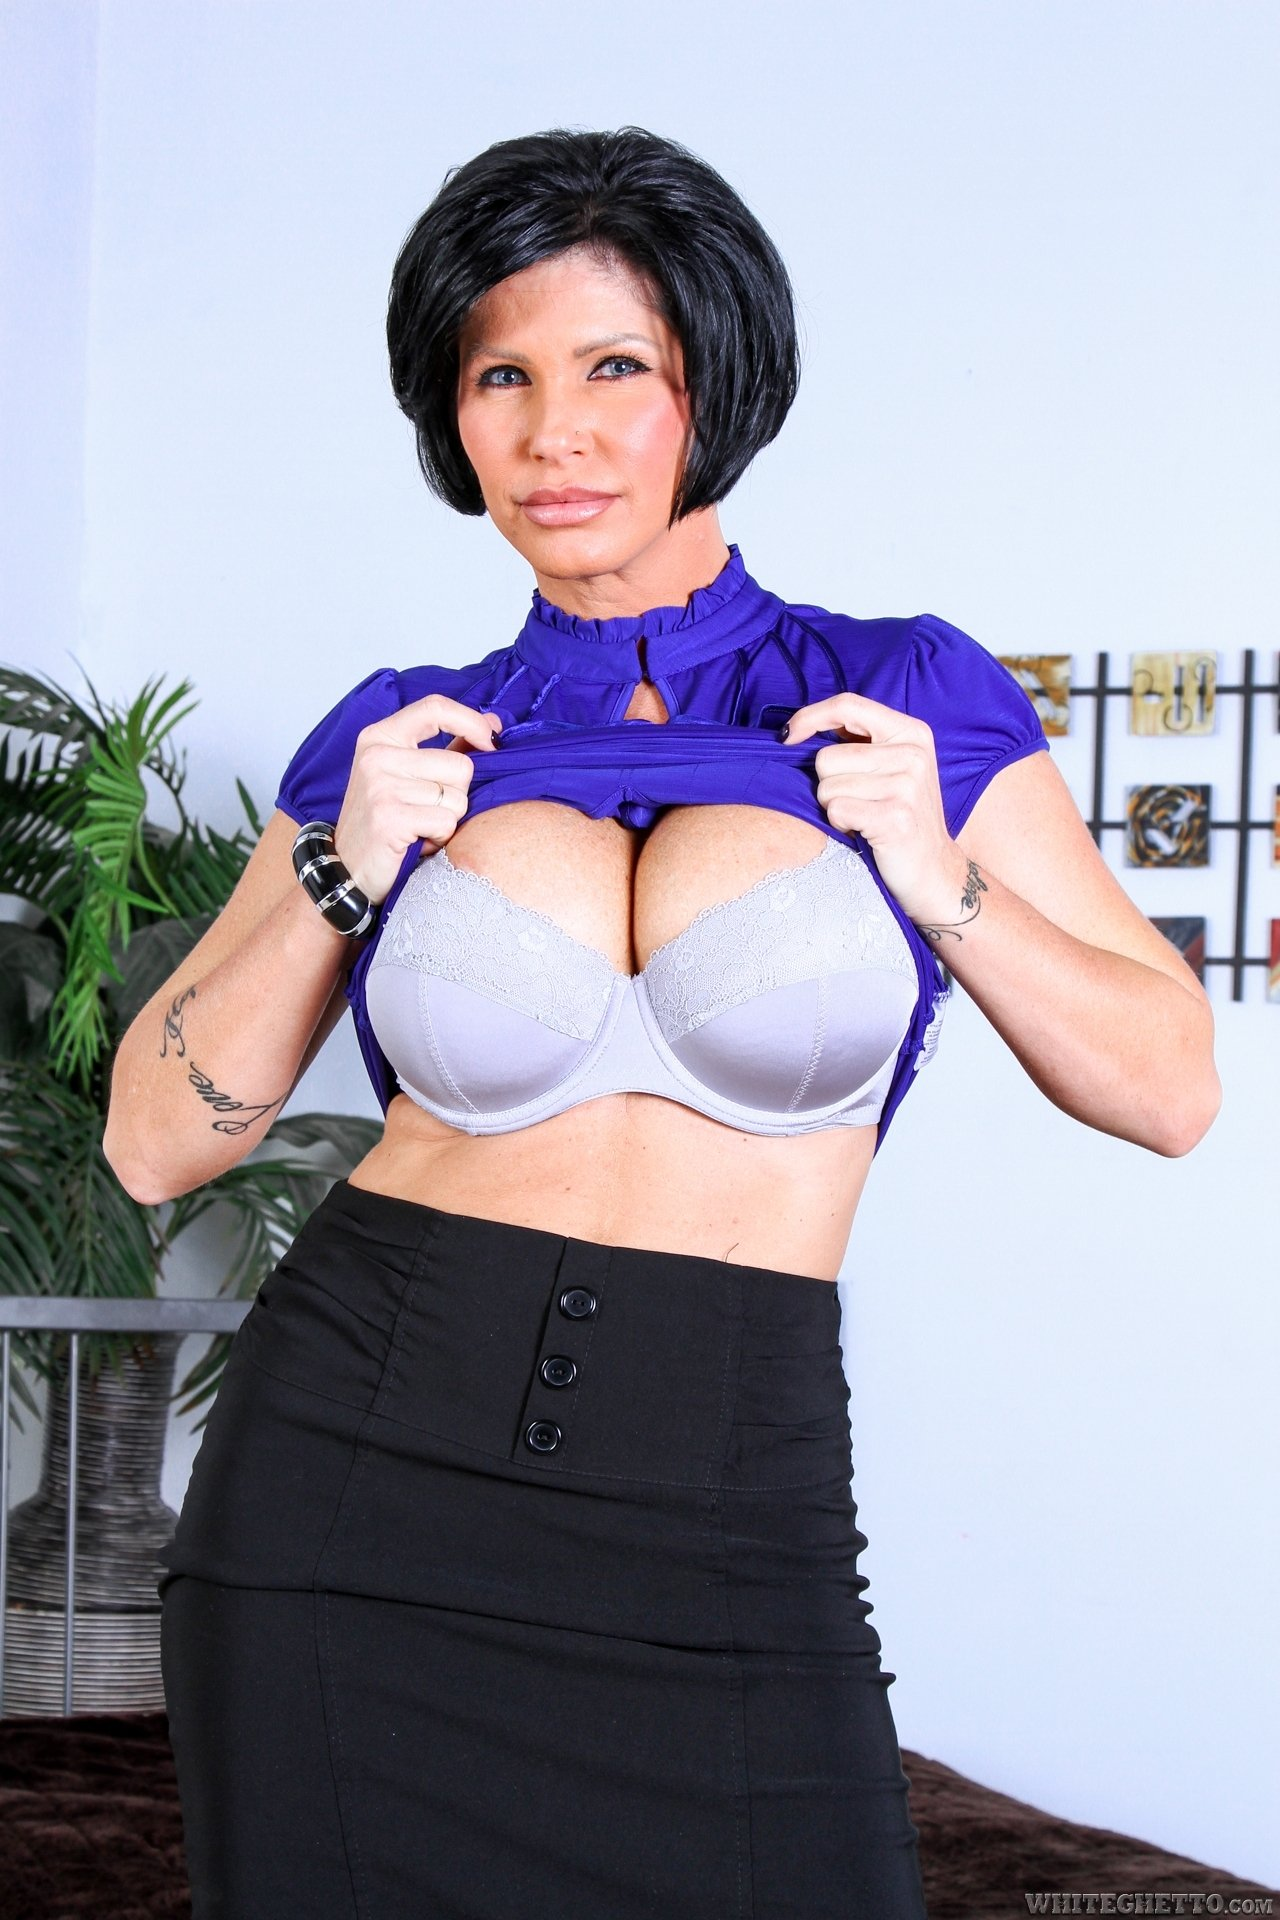 horny and ready milf on camboozle there